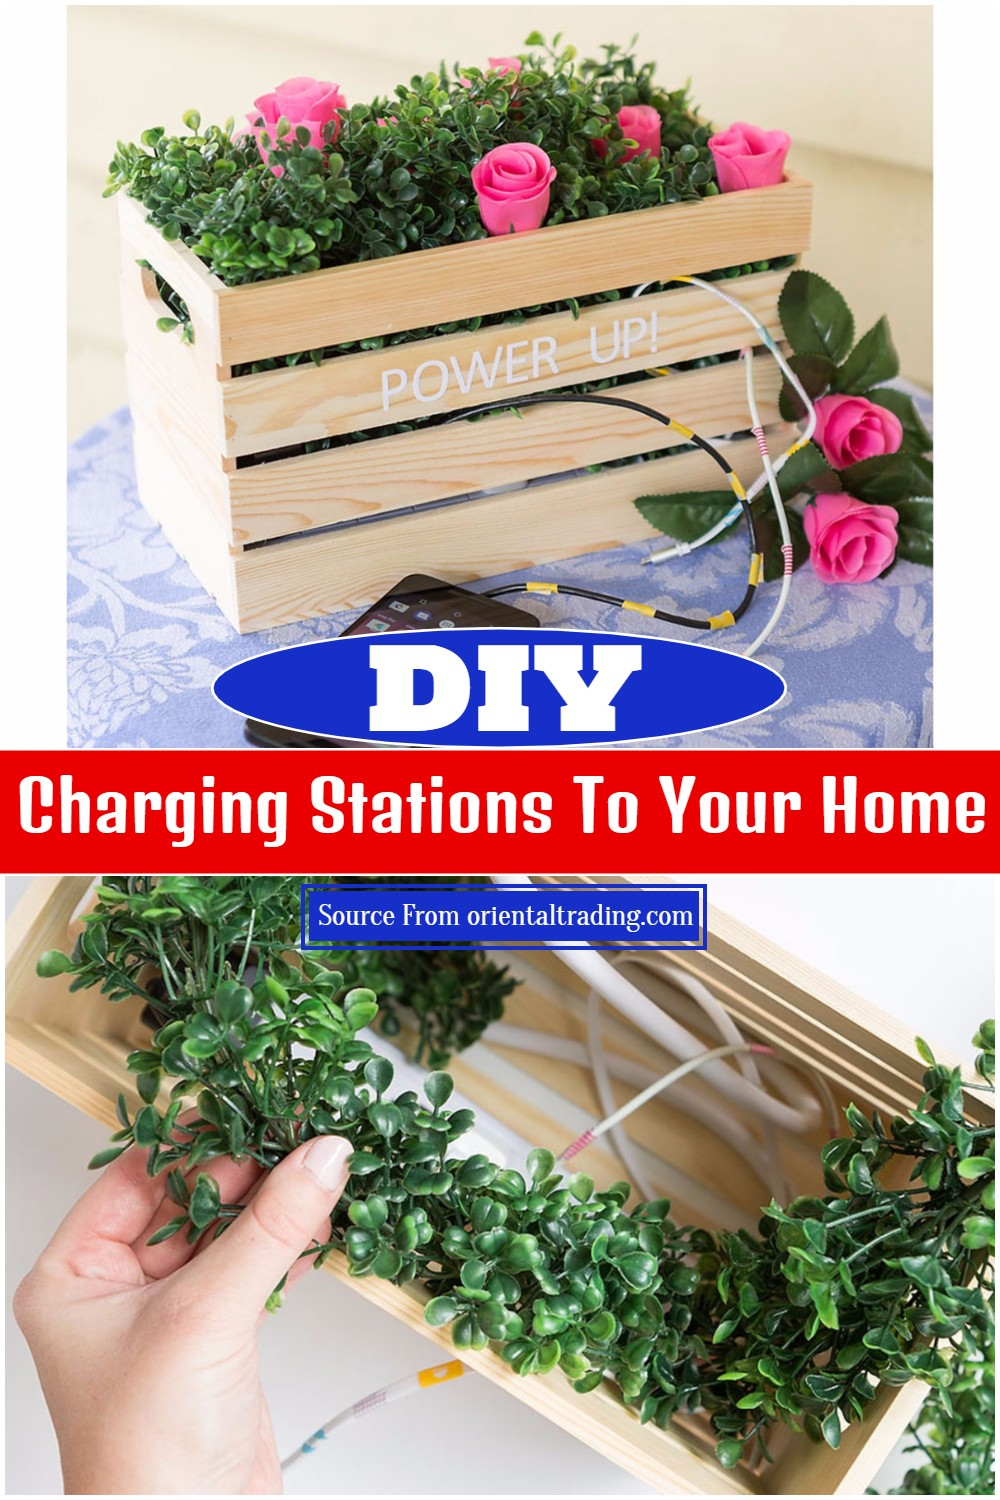 DIY Charging Stations To Your Home